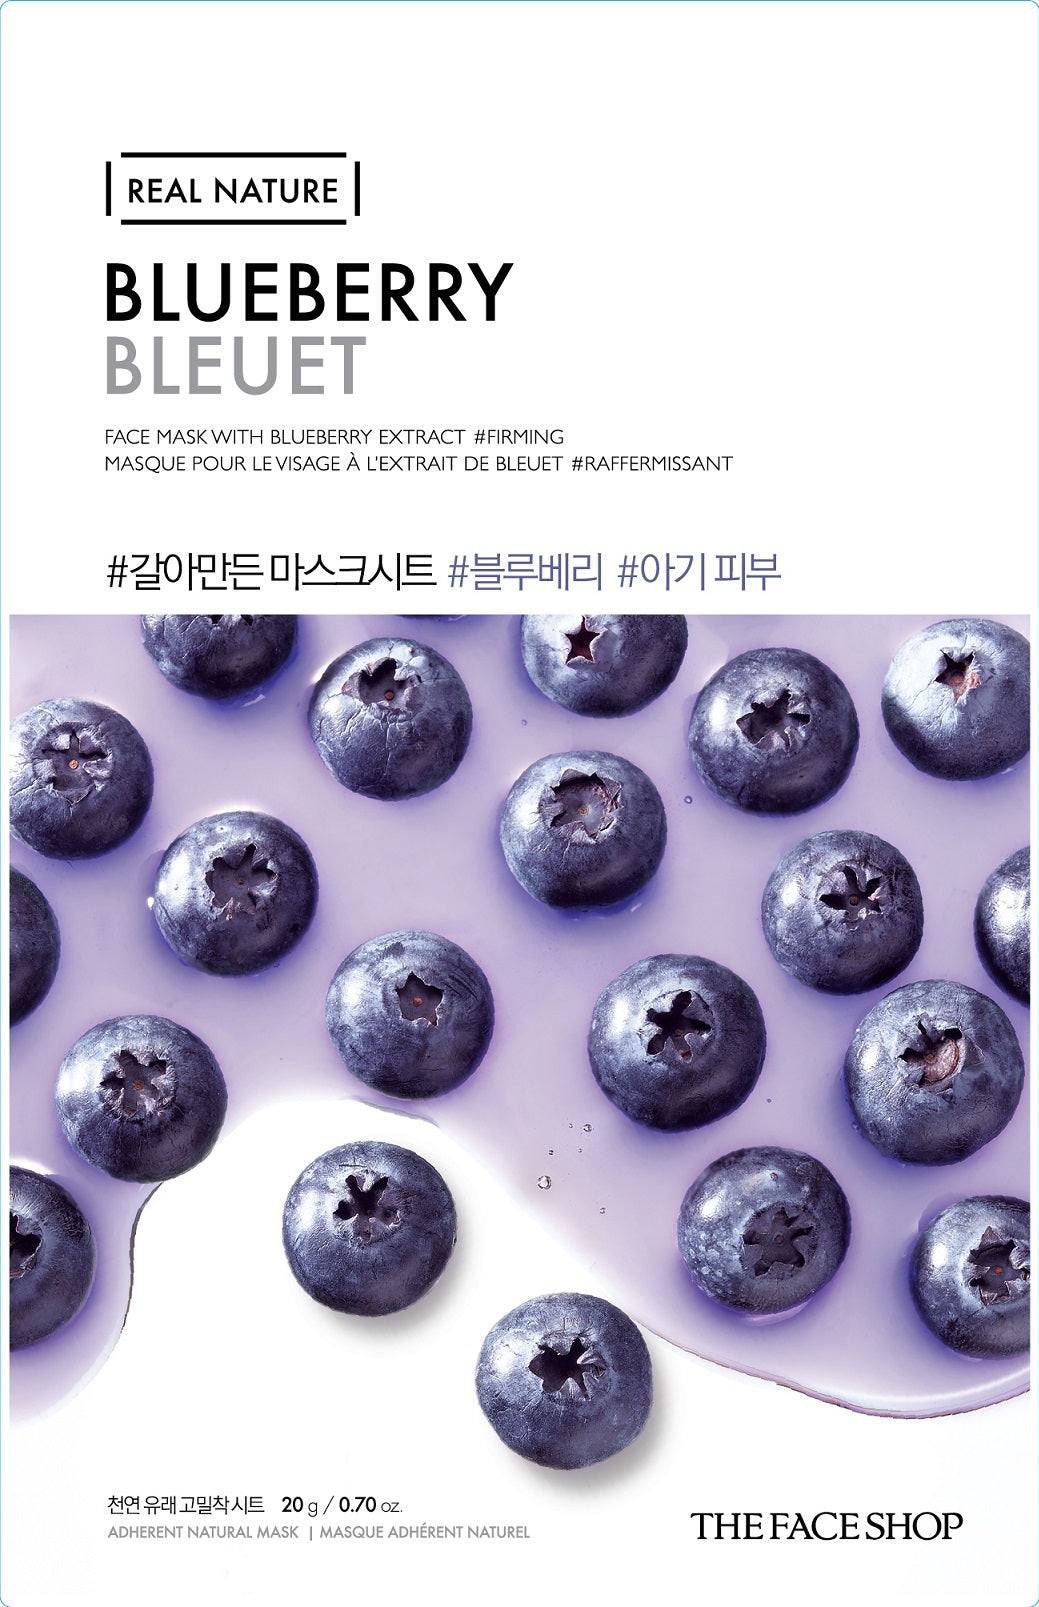 REAL NATURE BLUEBERRY FACE MASK - 20G